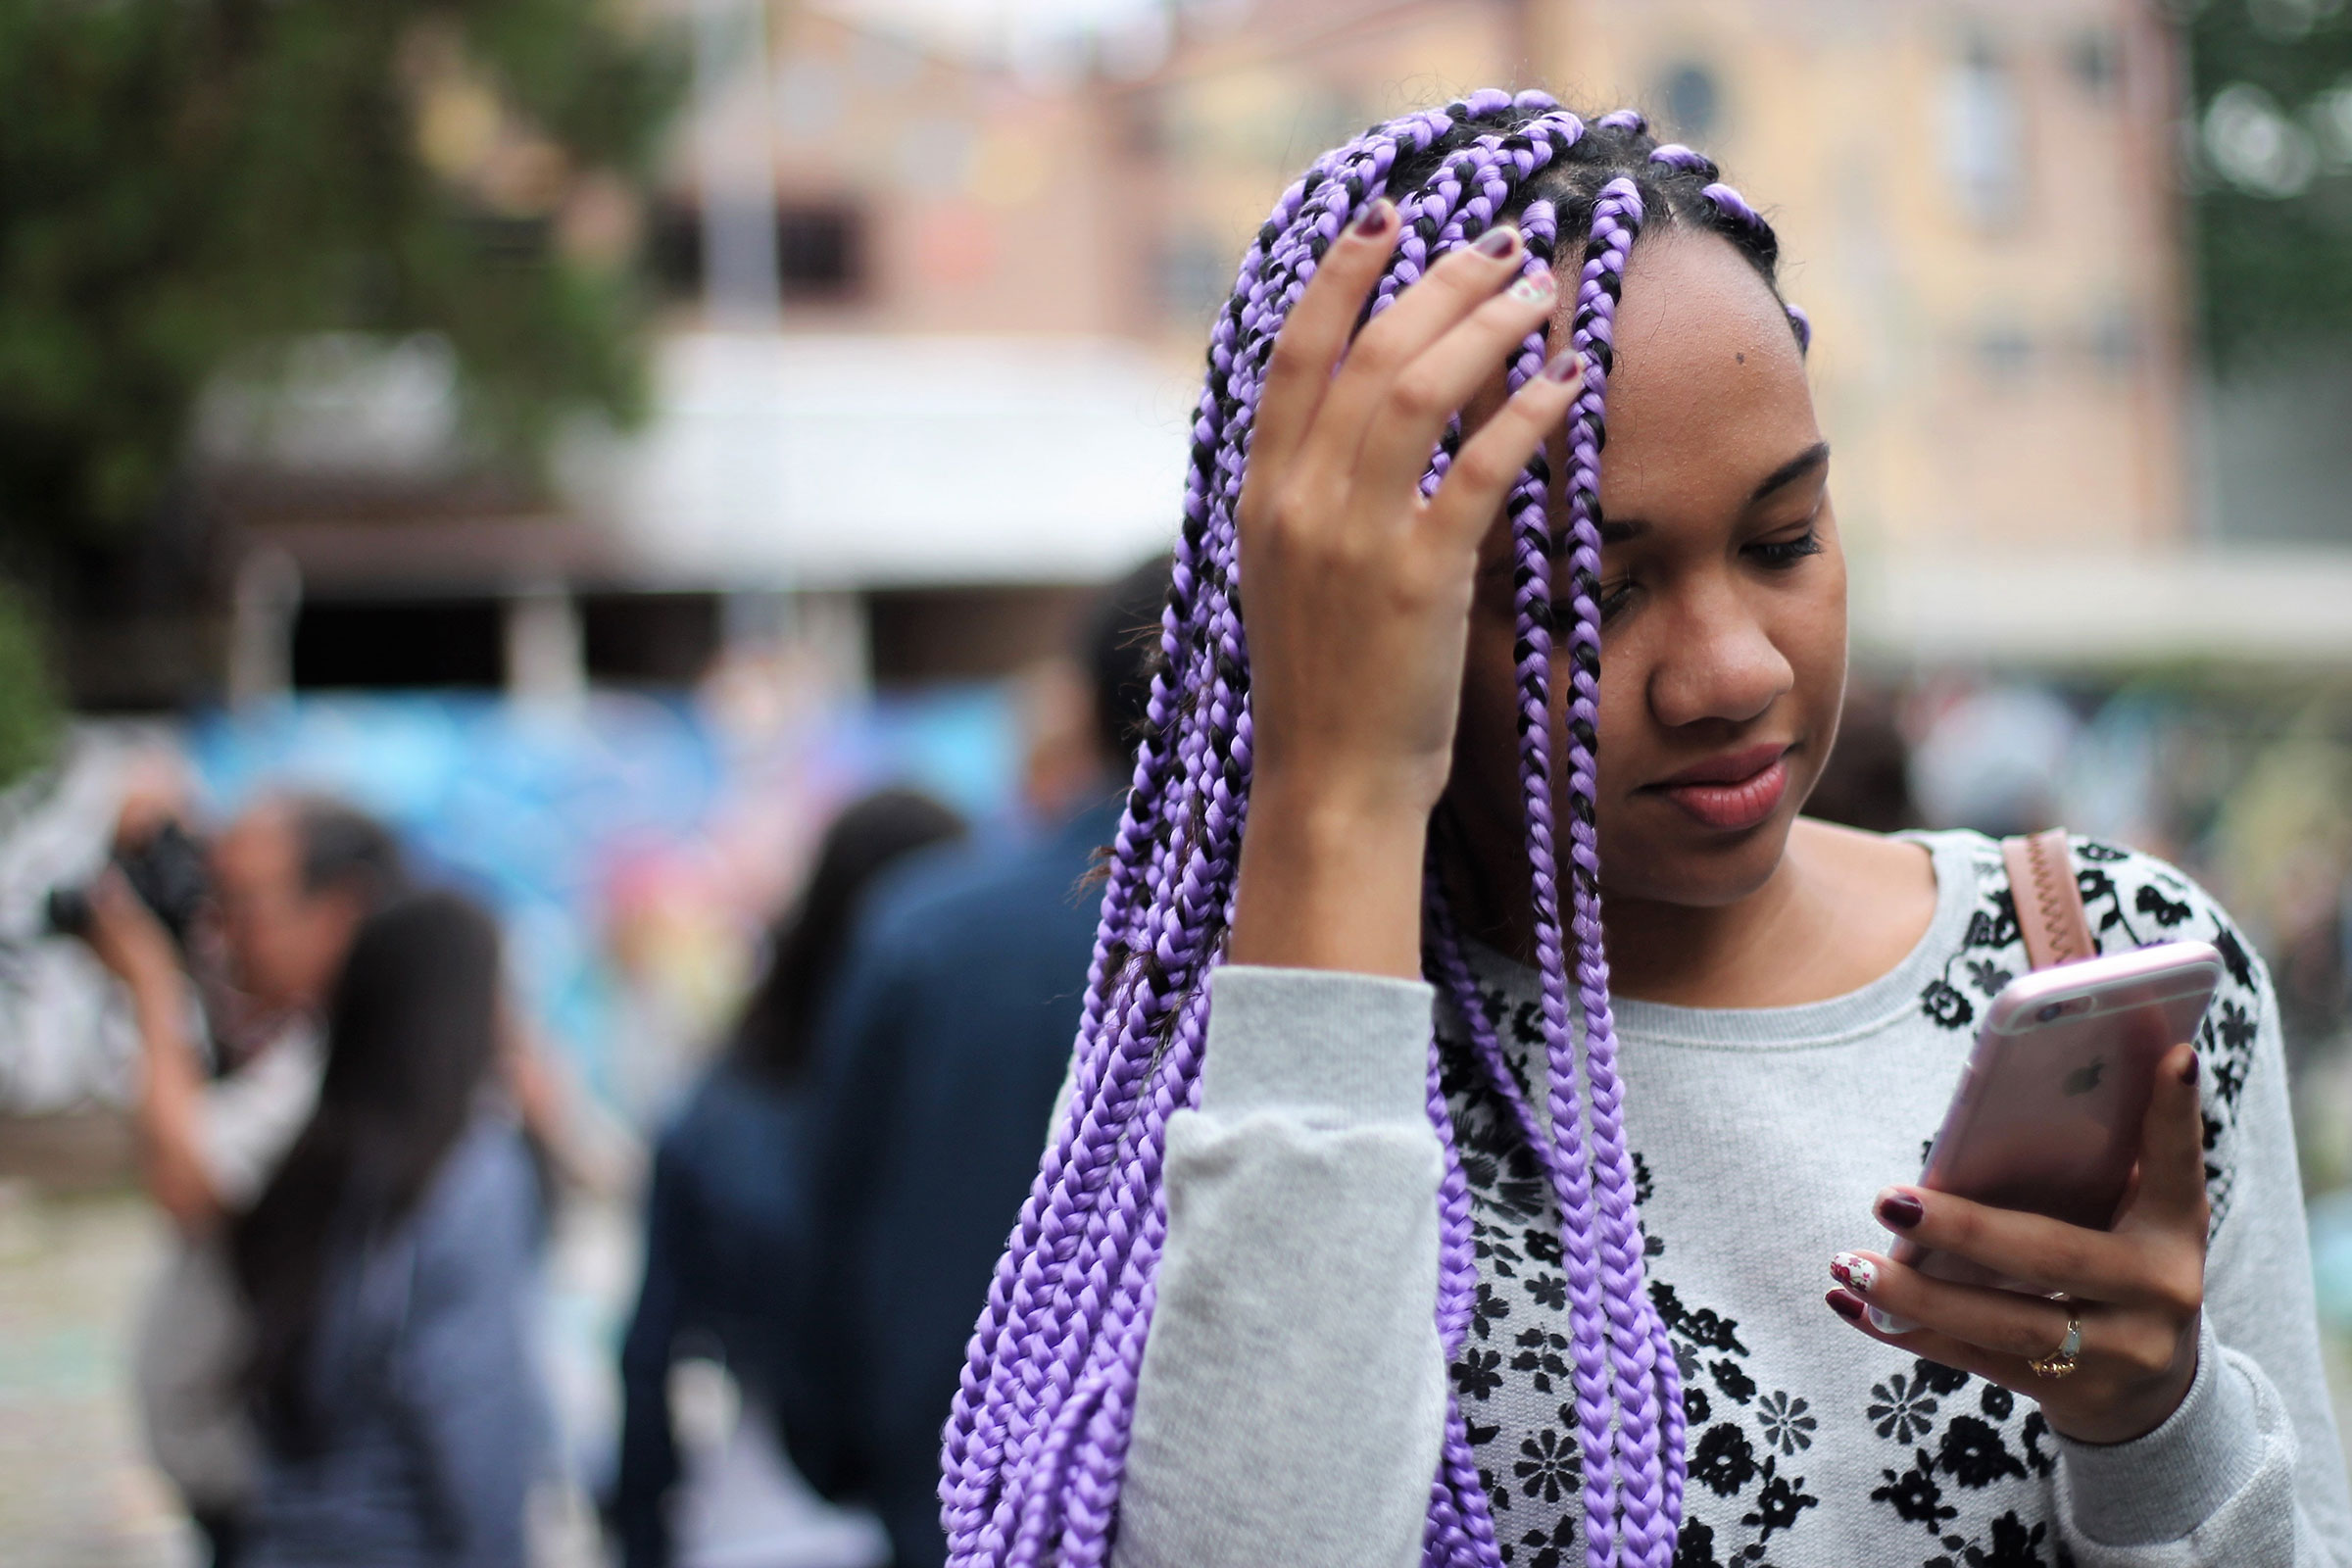 a Black teenager with long, purple hair, stares down at her phone